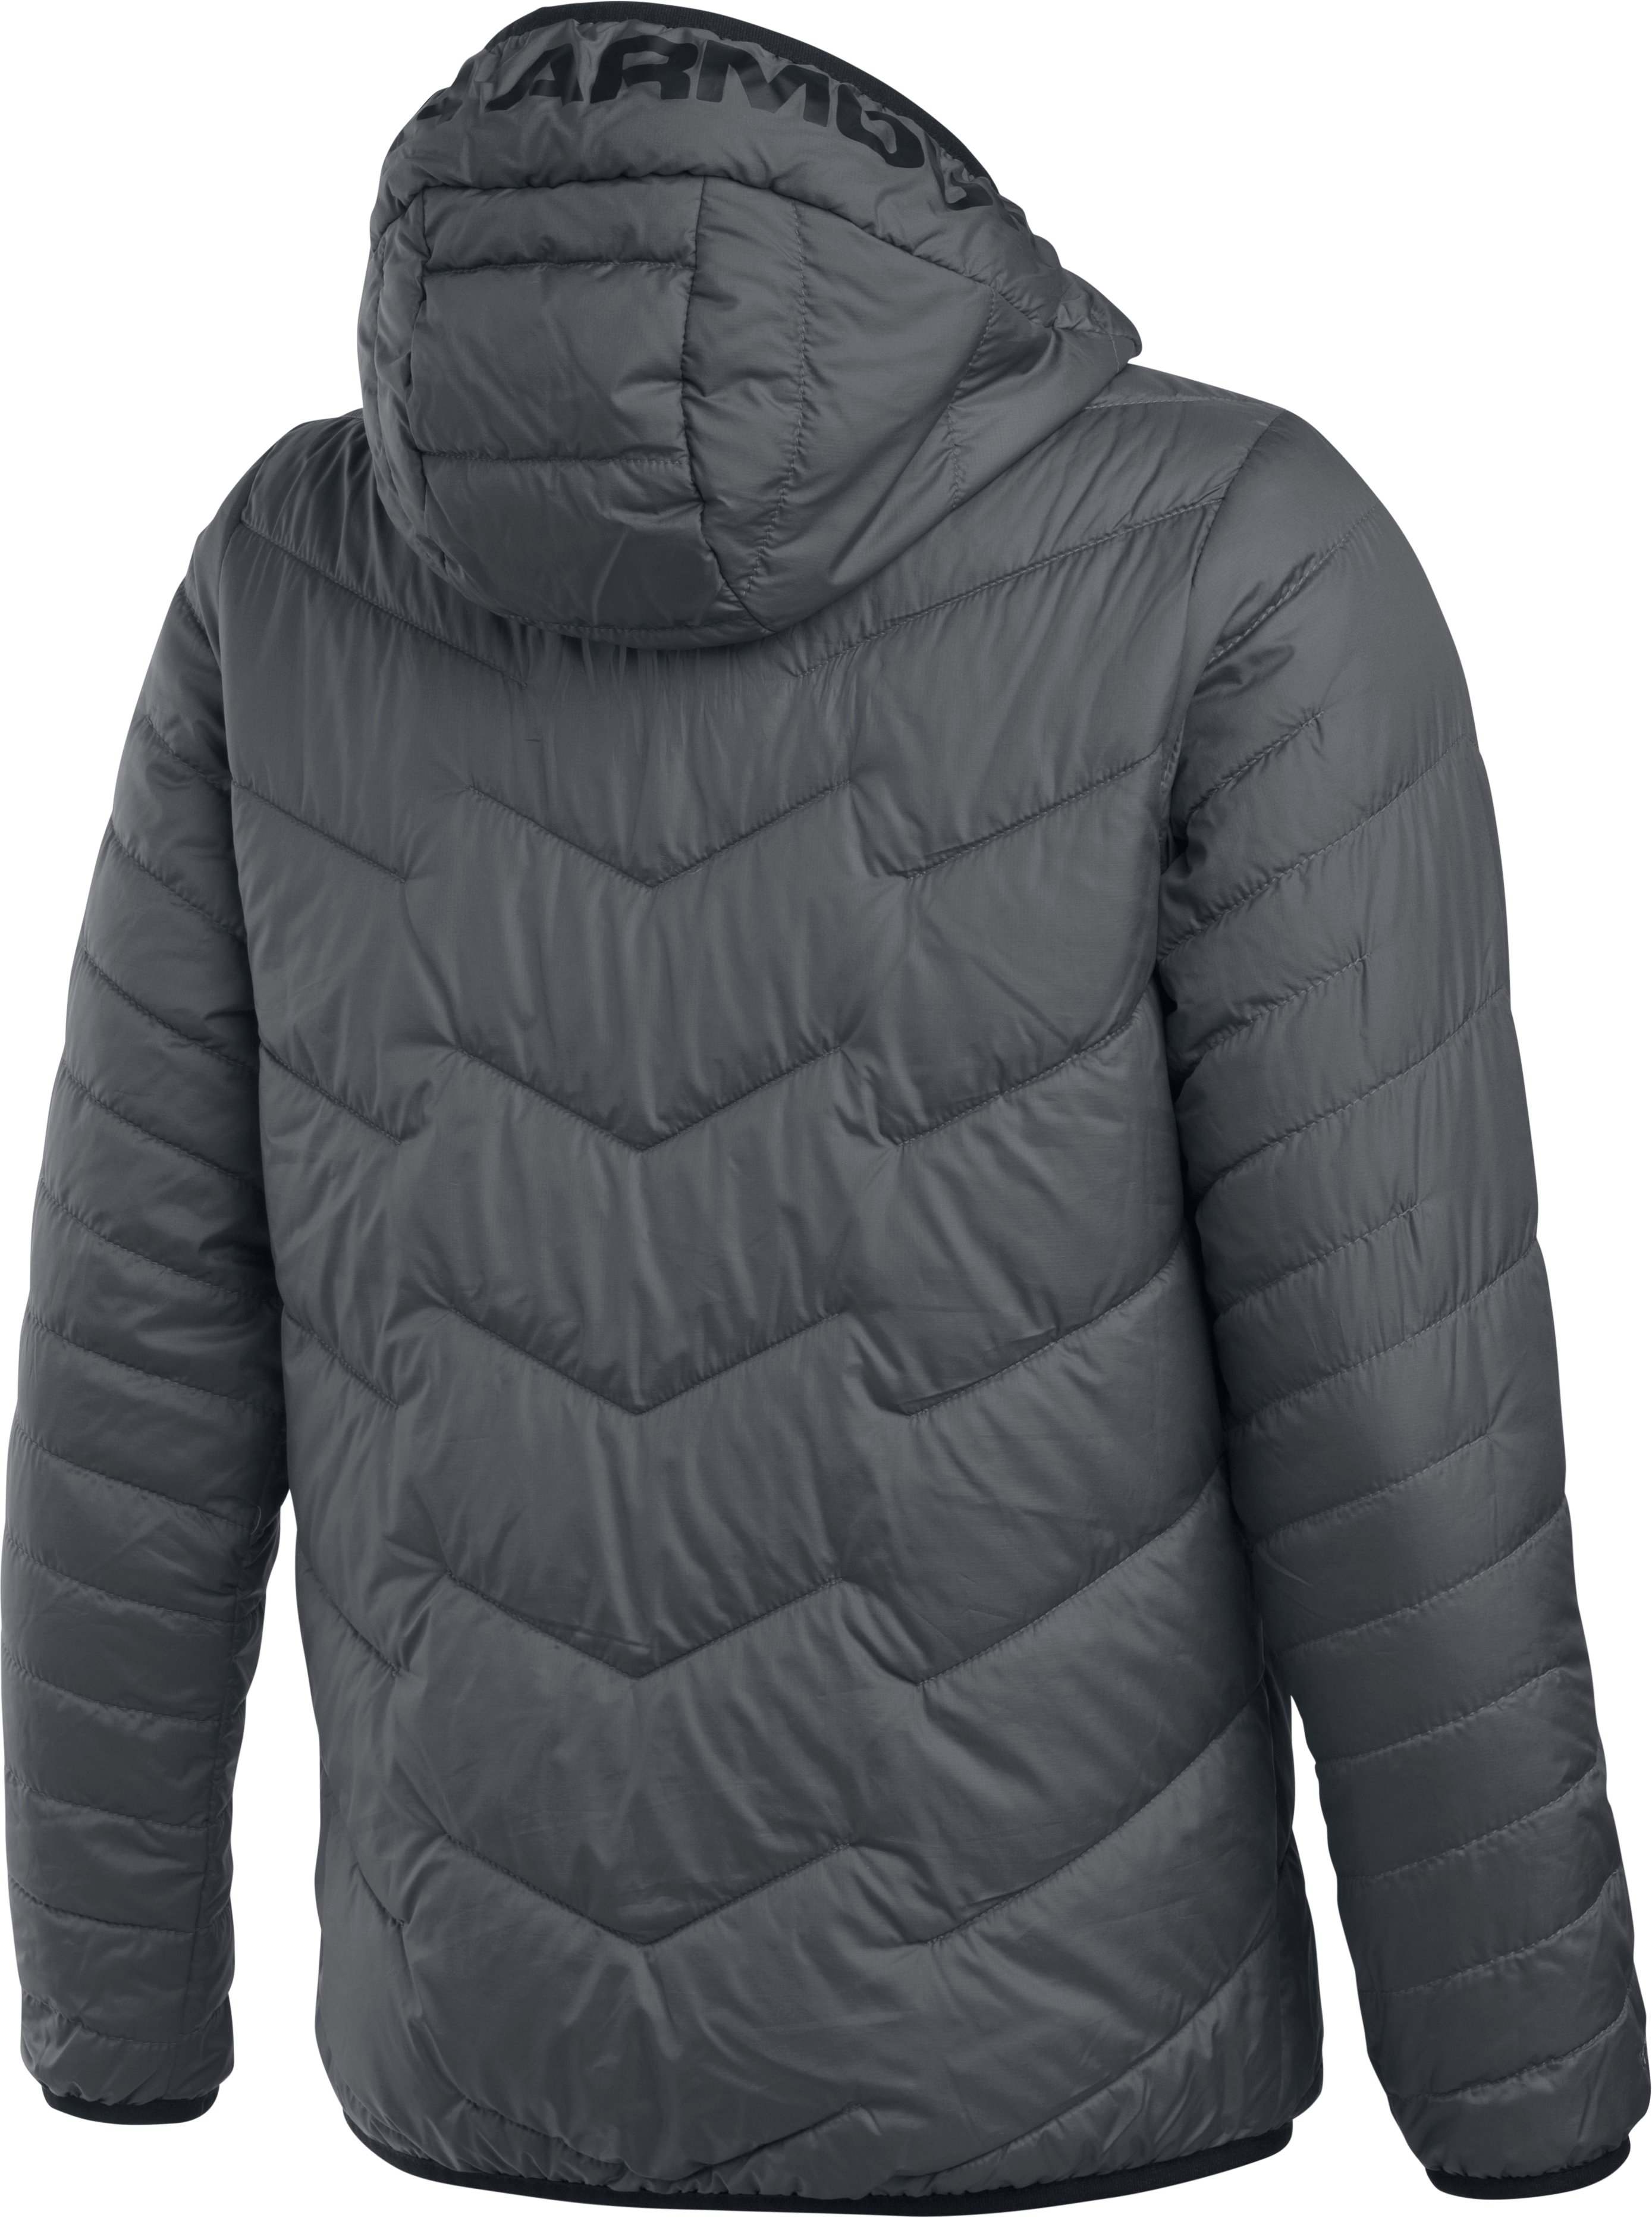 Boys' ColdGear® Reactor Hooded Jacket, Graphite,